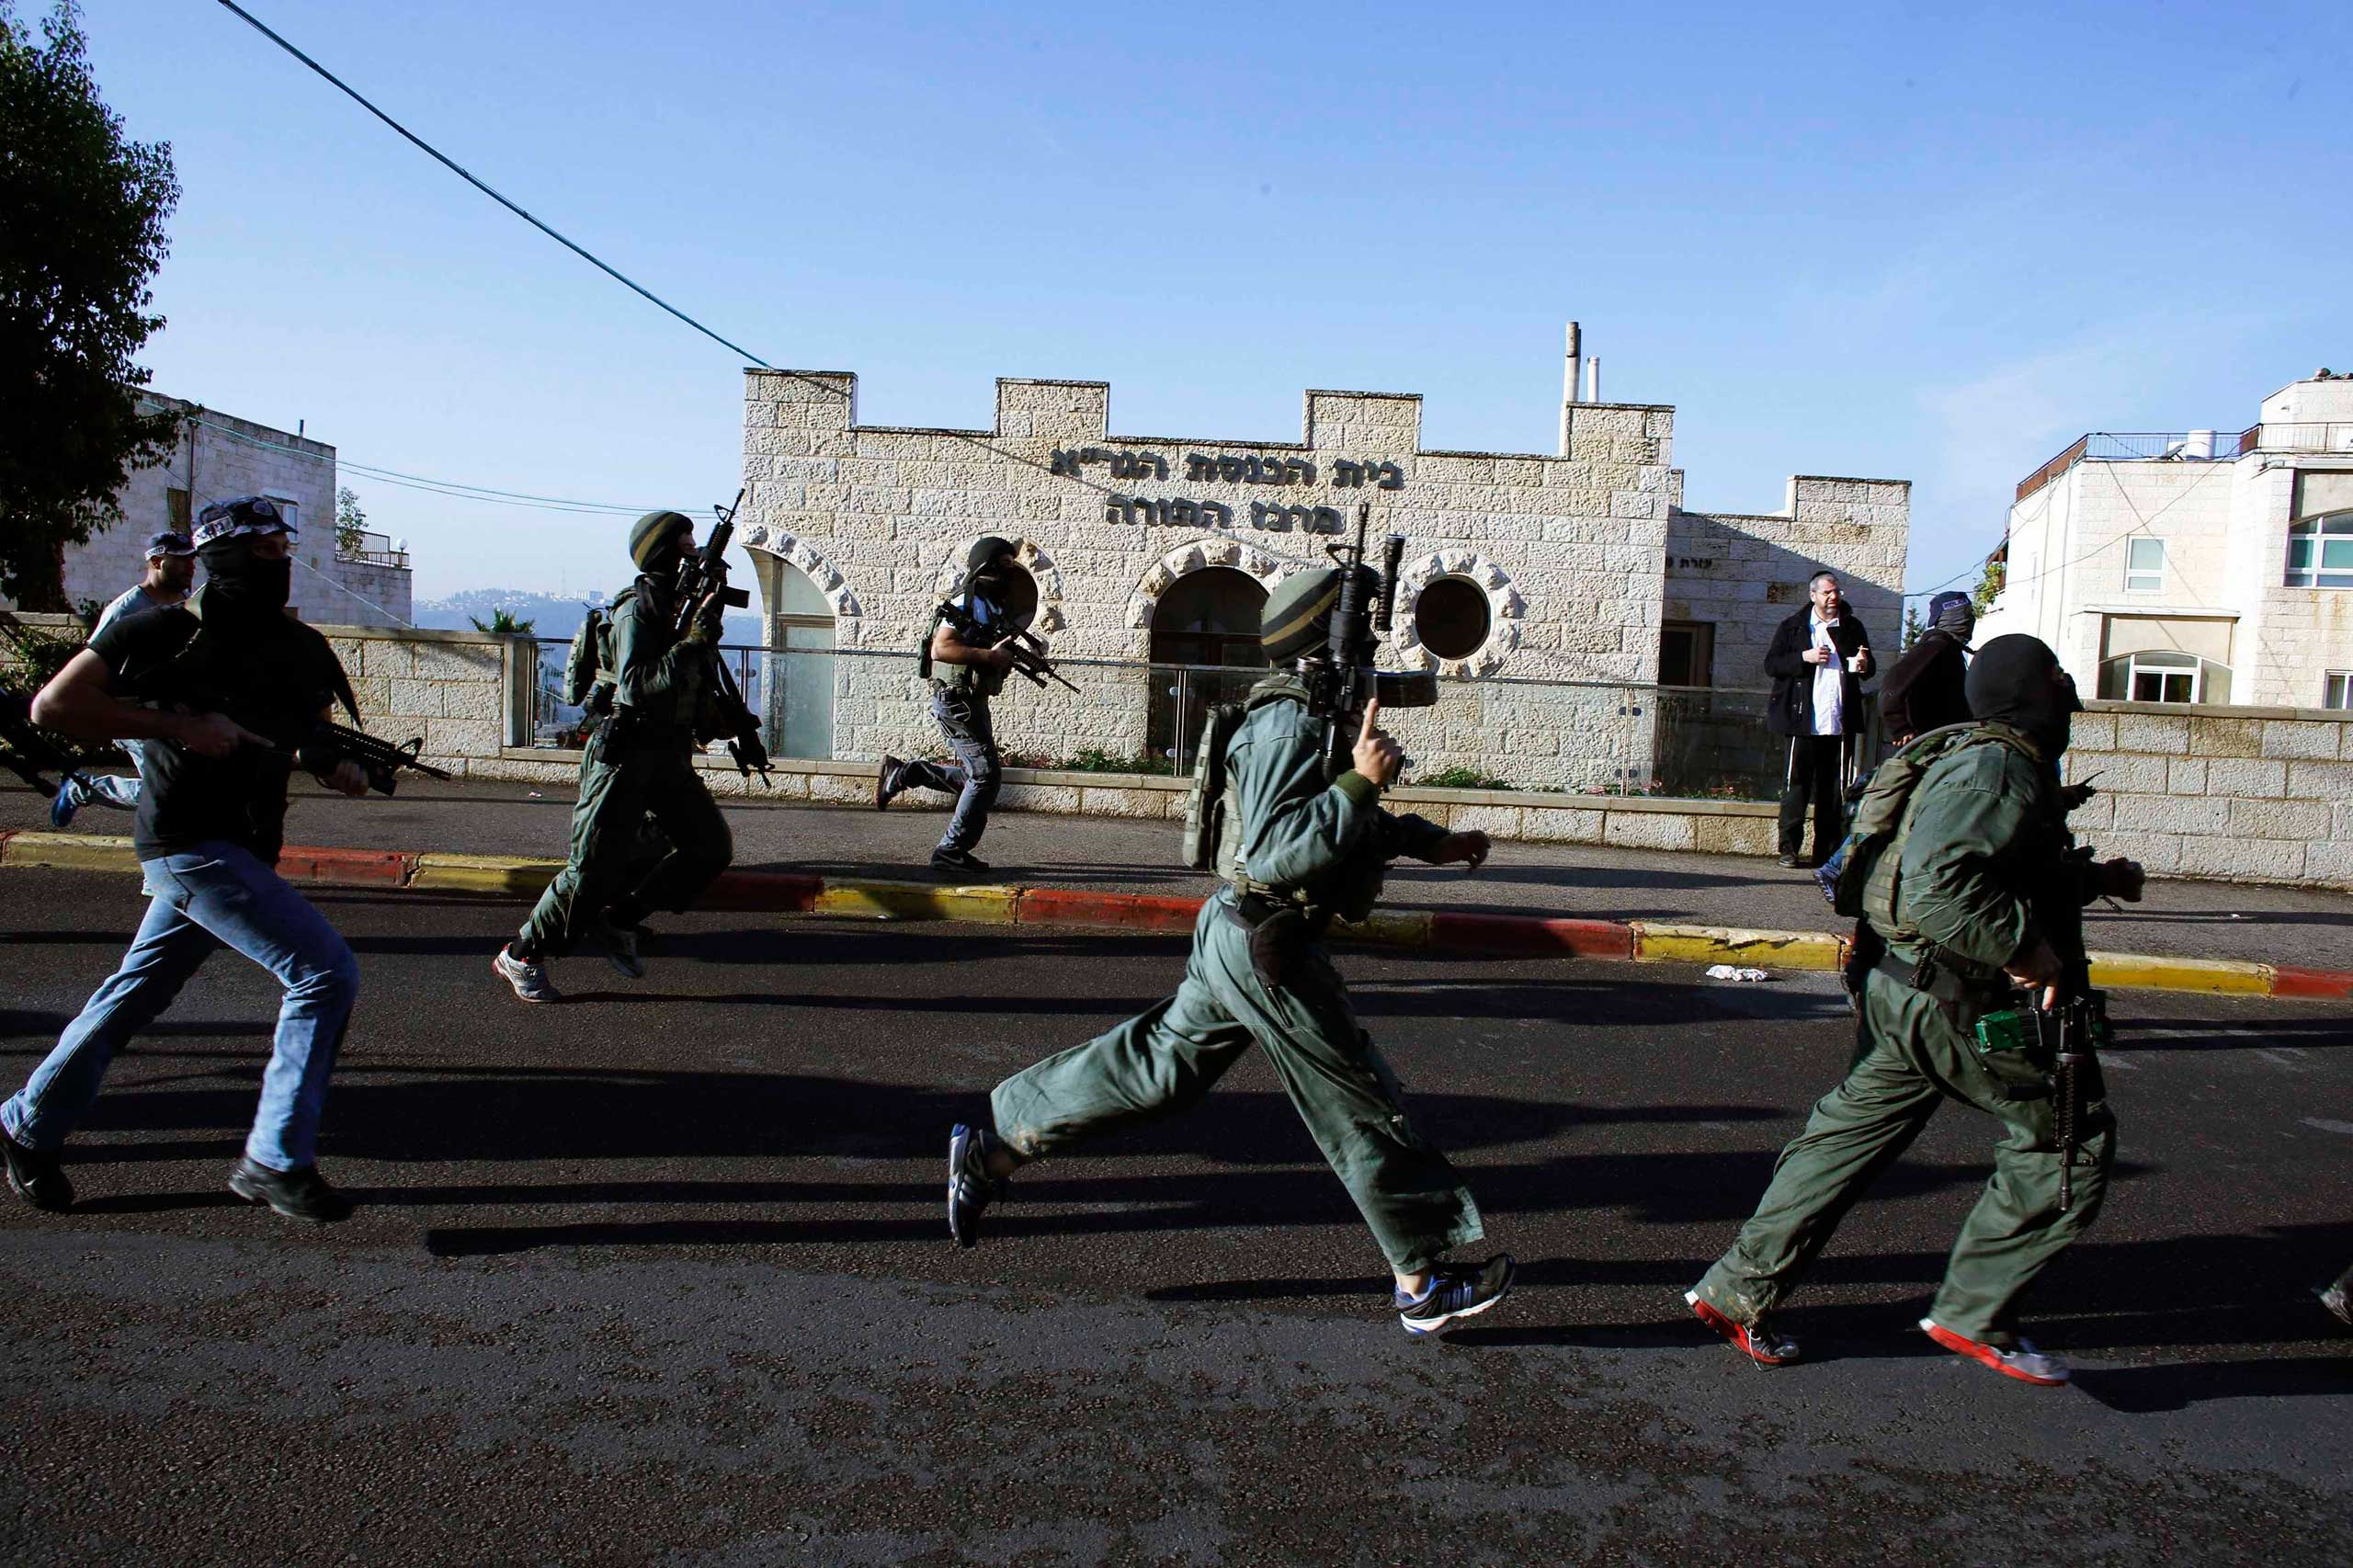 Israeli security personnel run next to a synagogue, where a suspected Palestinian attack took place, in Jerusalem on Nov. 18, 2014.